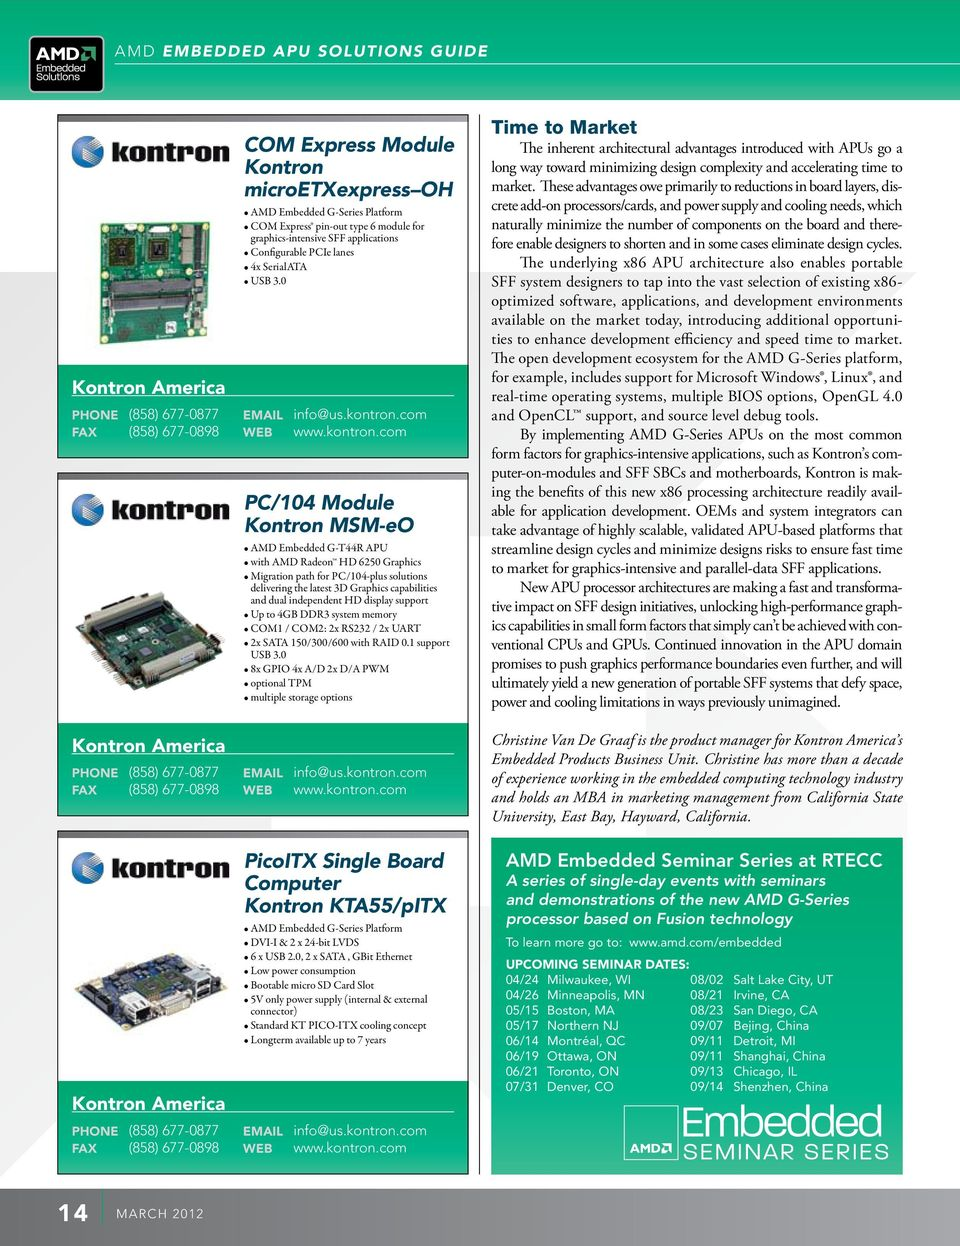 com Kontron America COM Express Module Kontron microetxexpress OH COM Express pin-out type 6 module for graphics-intensive SFF applications Configurable PCIe lanes 4x SerialATA USB 3.